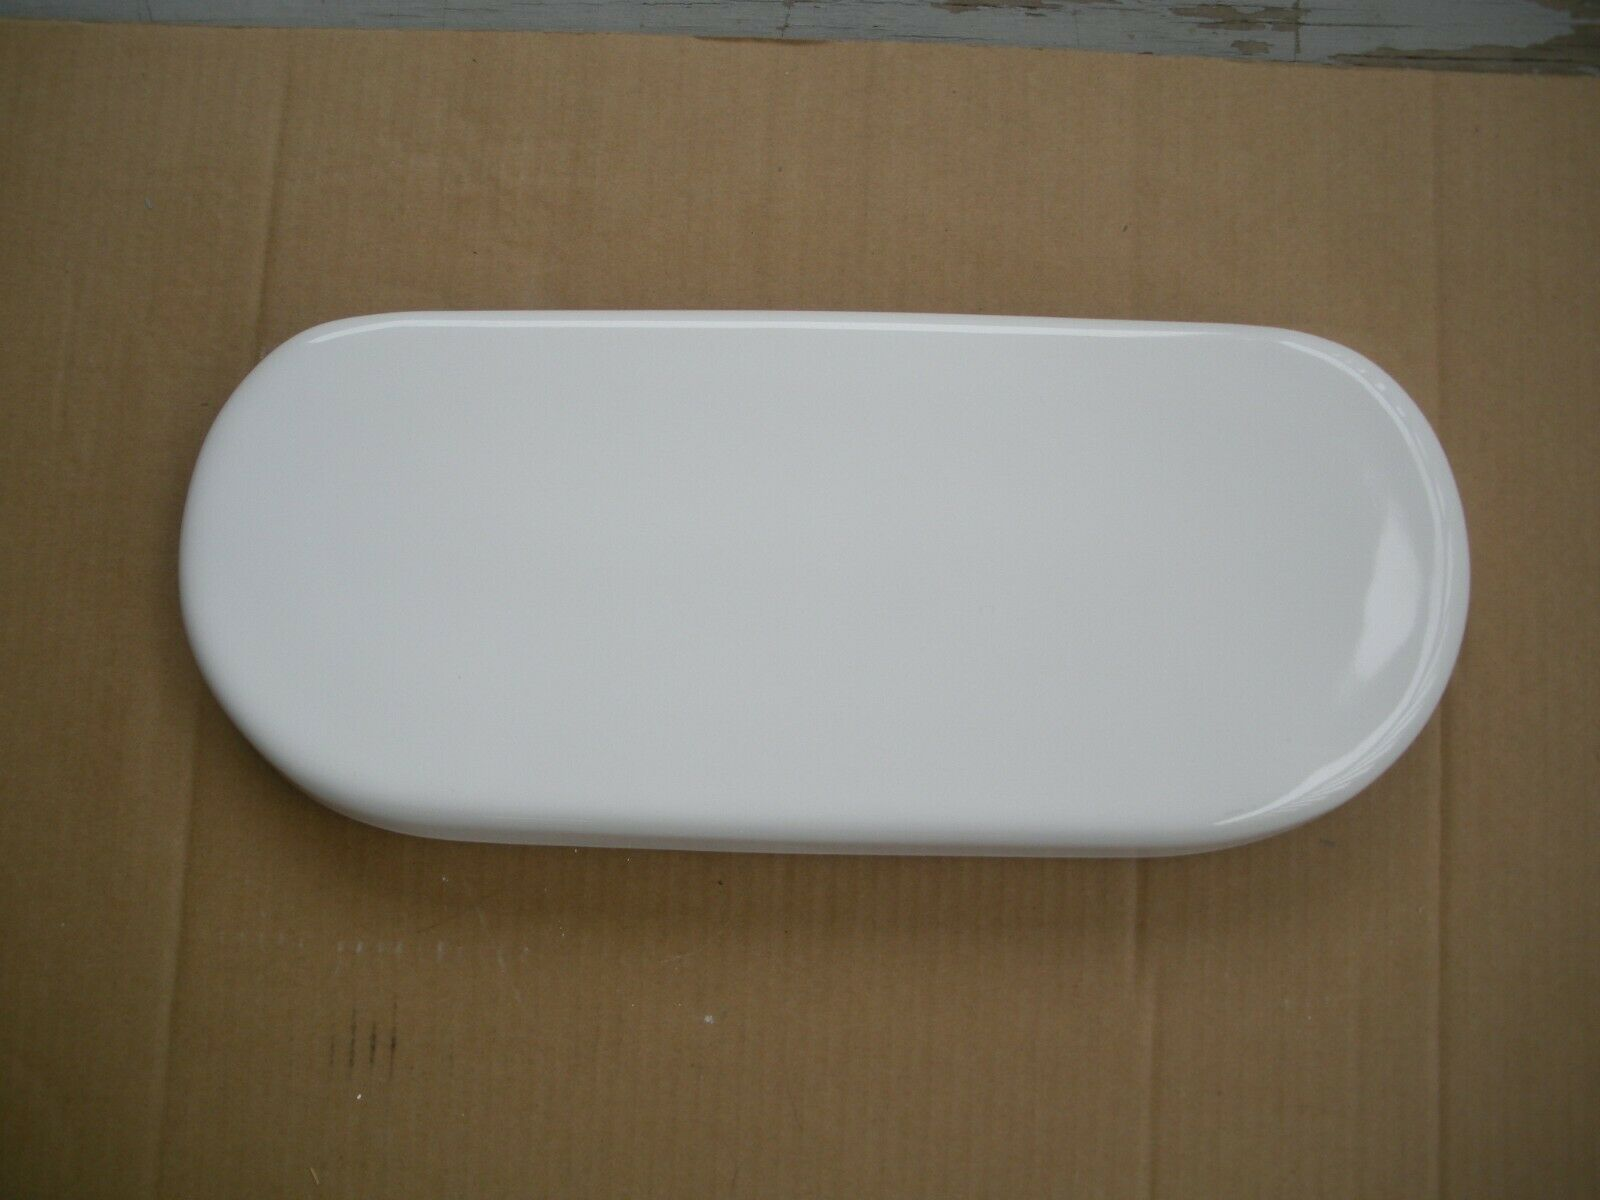 Magnificent Kohler Toilet Tank Lid Top Cover K4580 One Piece 15 3 8 X 6 3 8 White Bralicious Painted Fabric Chair Ideas Braliciousco